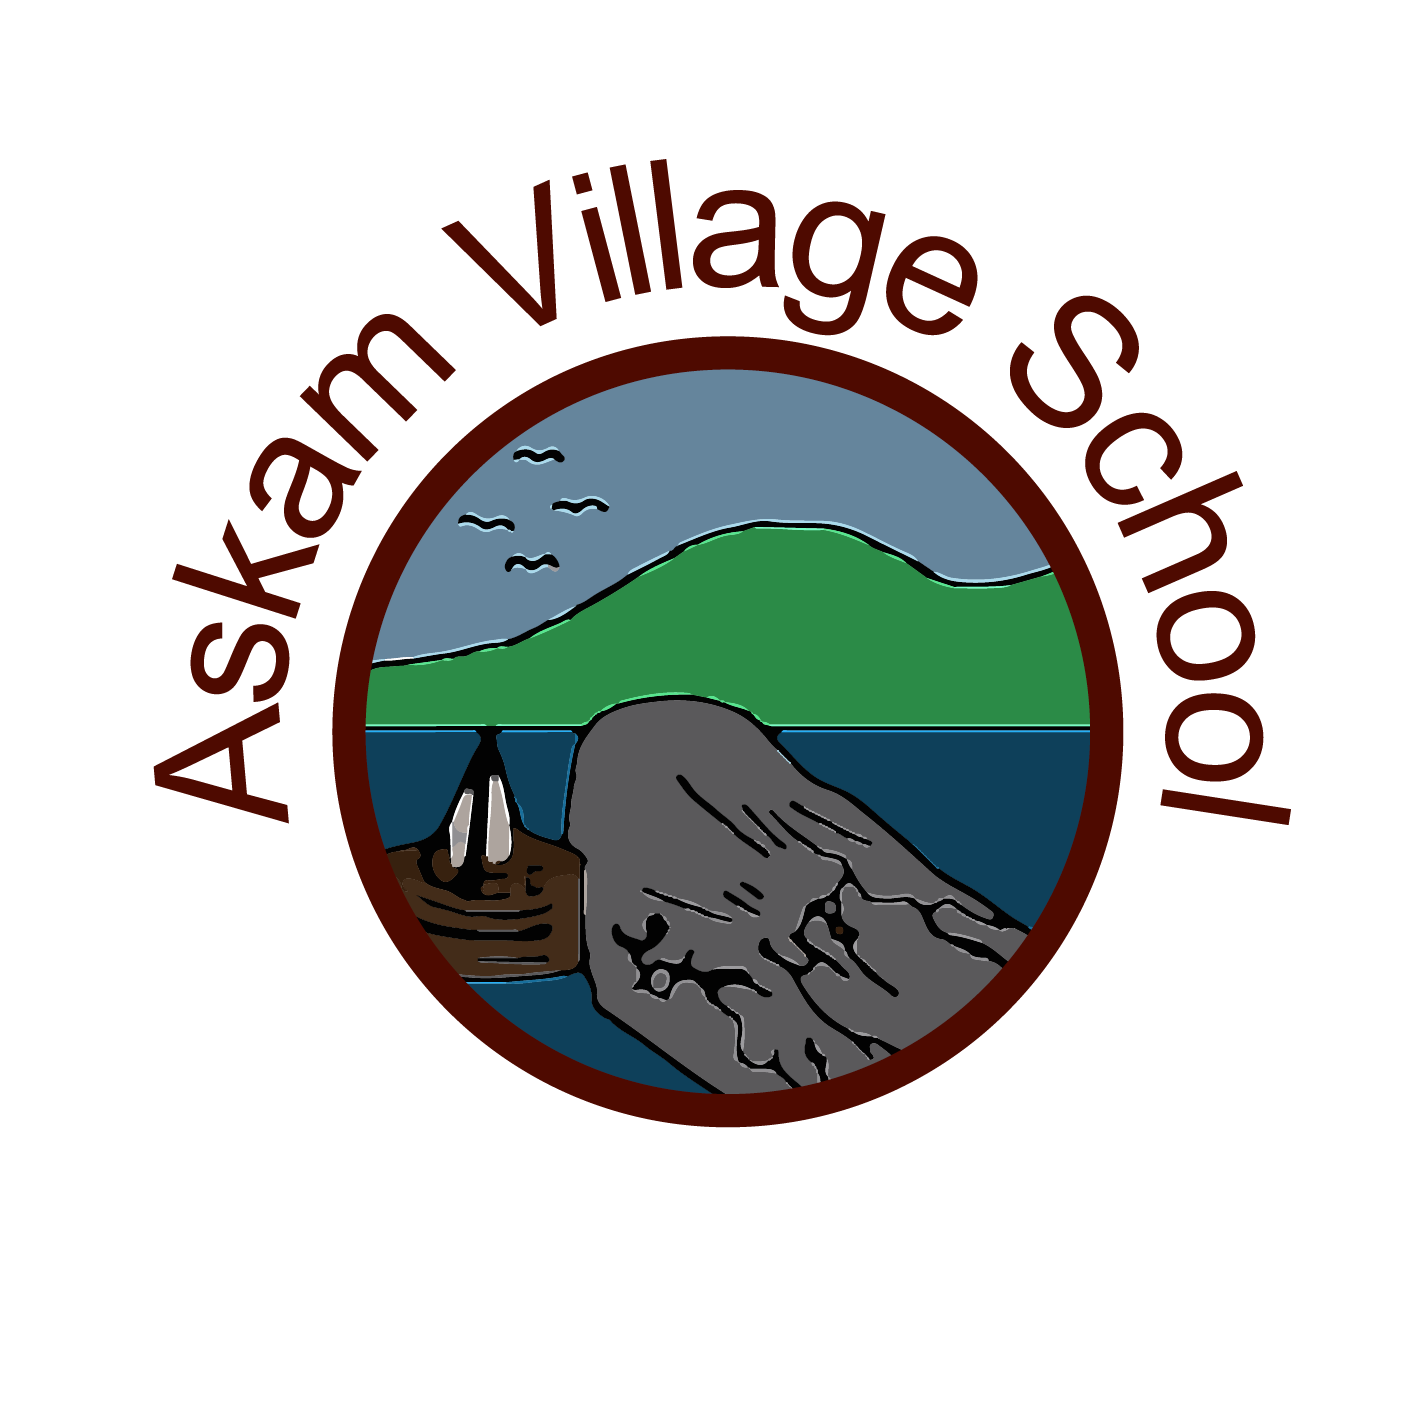 Askam Village School